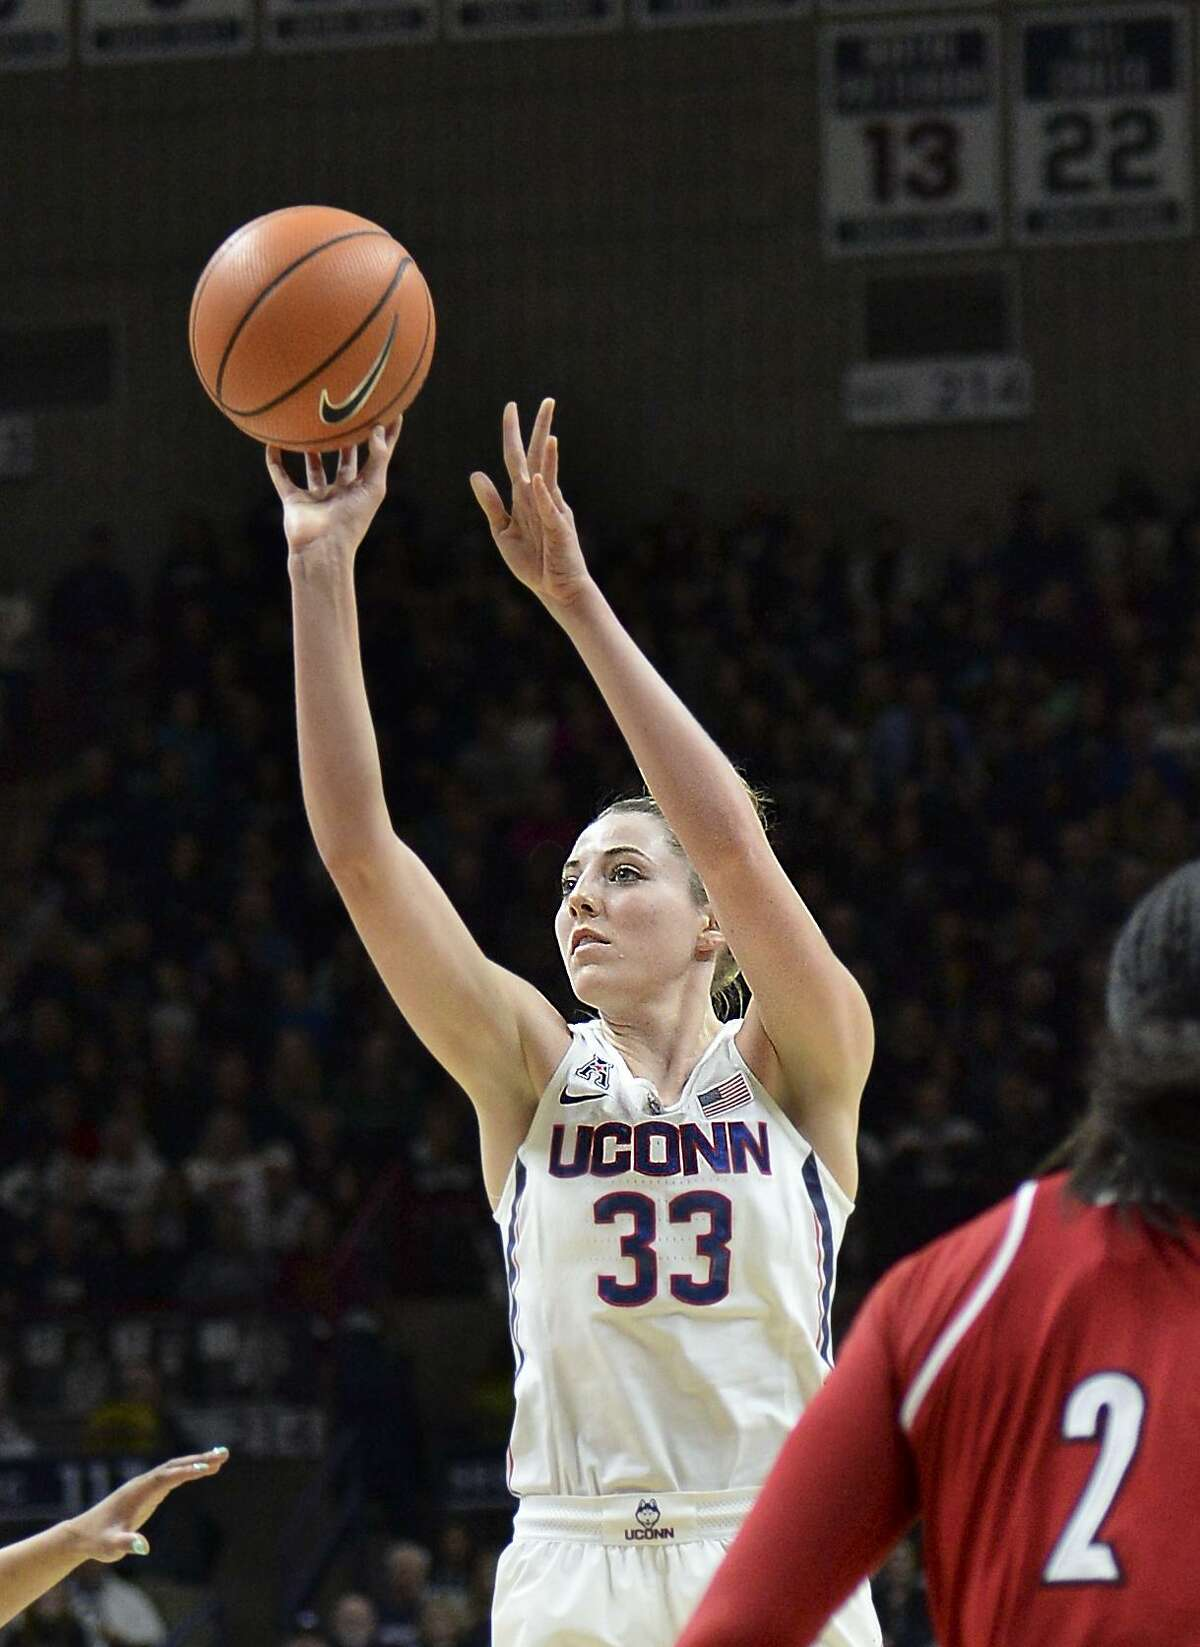 UConn's Katie Lou Samuelson puts up a shot against Louisville on Monday in Storrs.